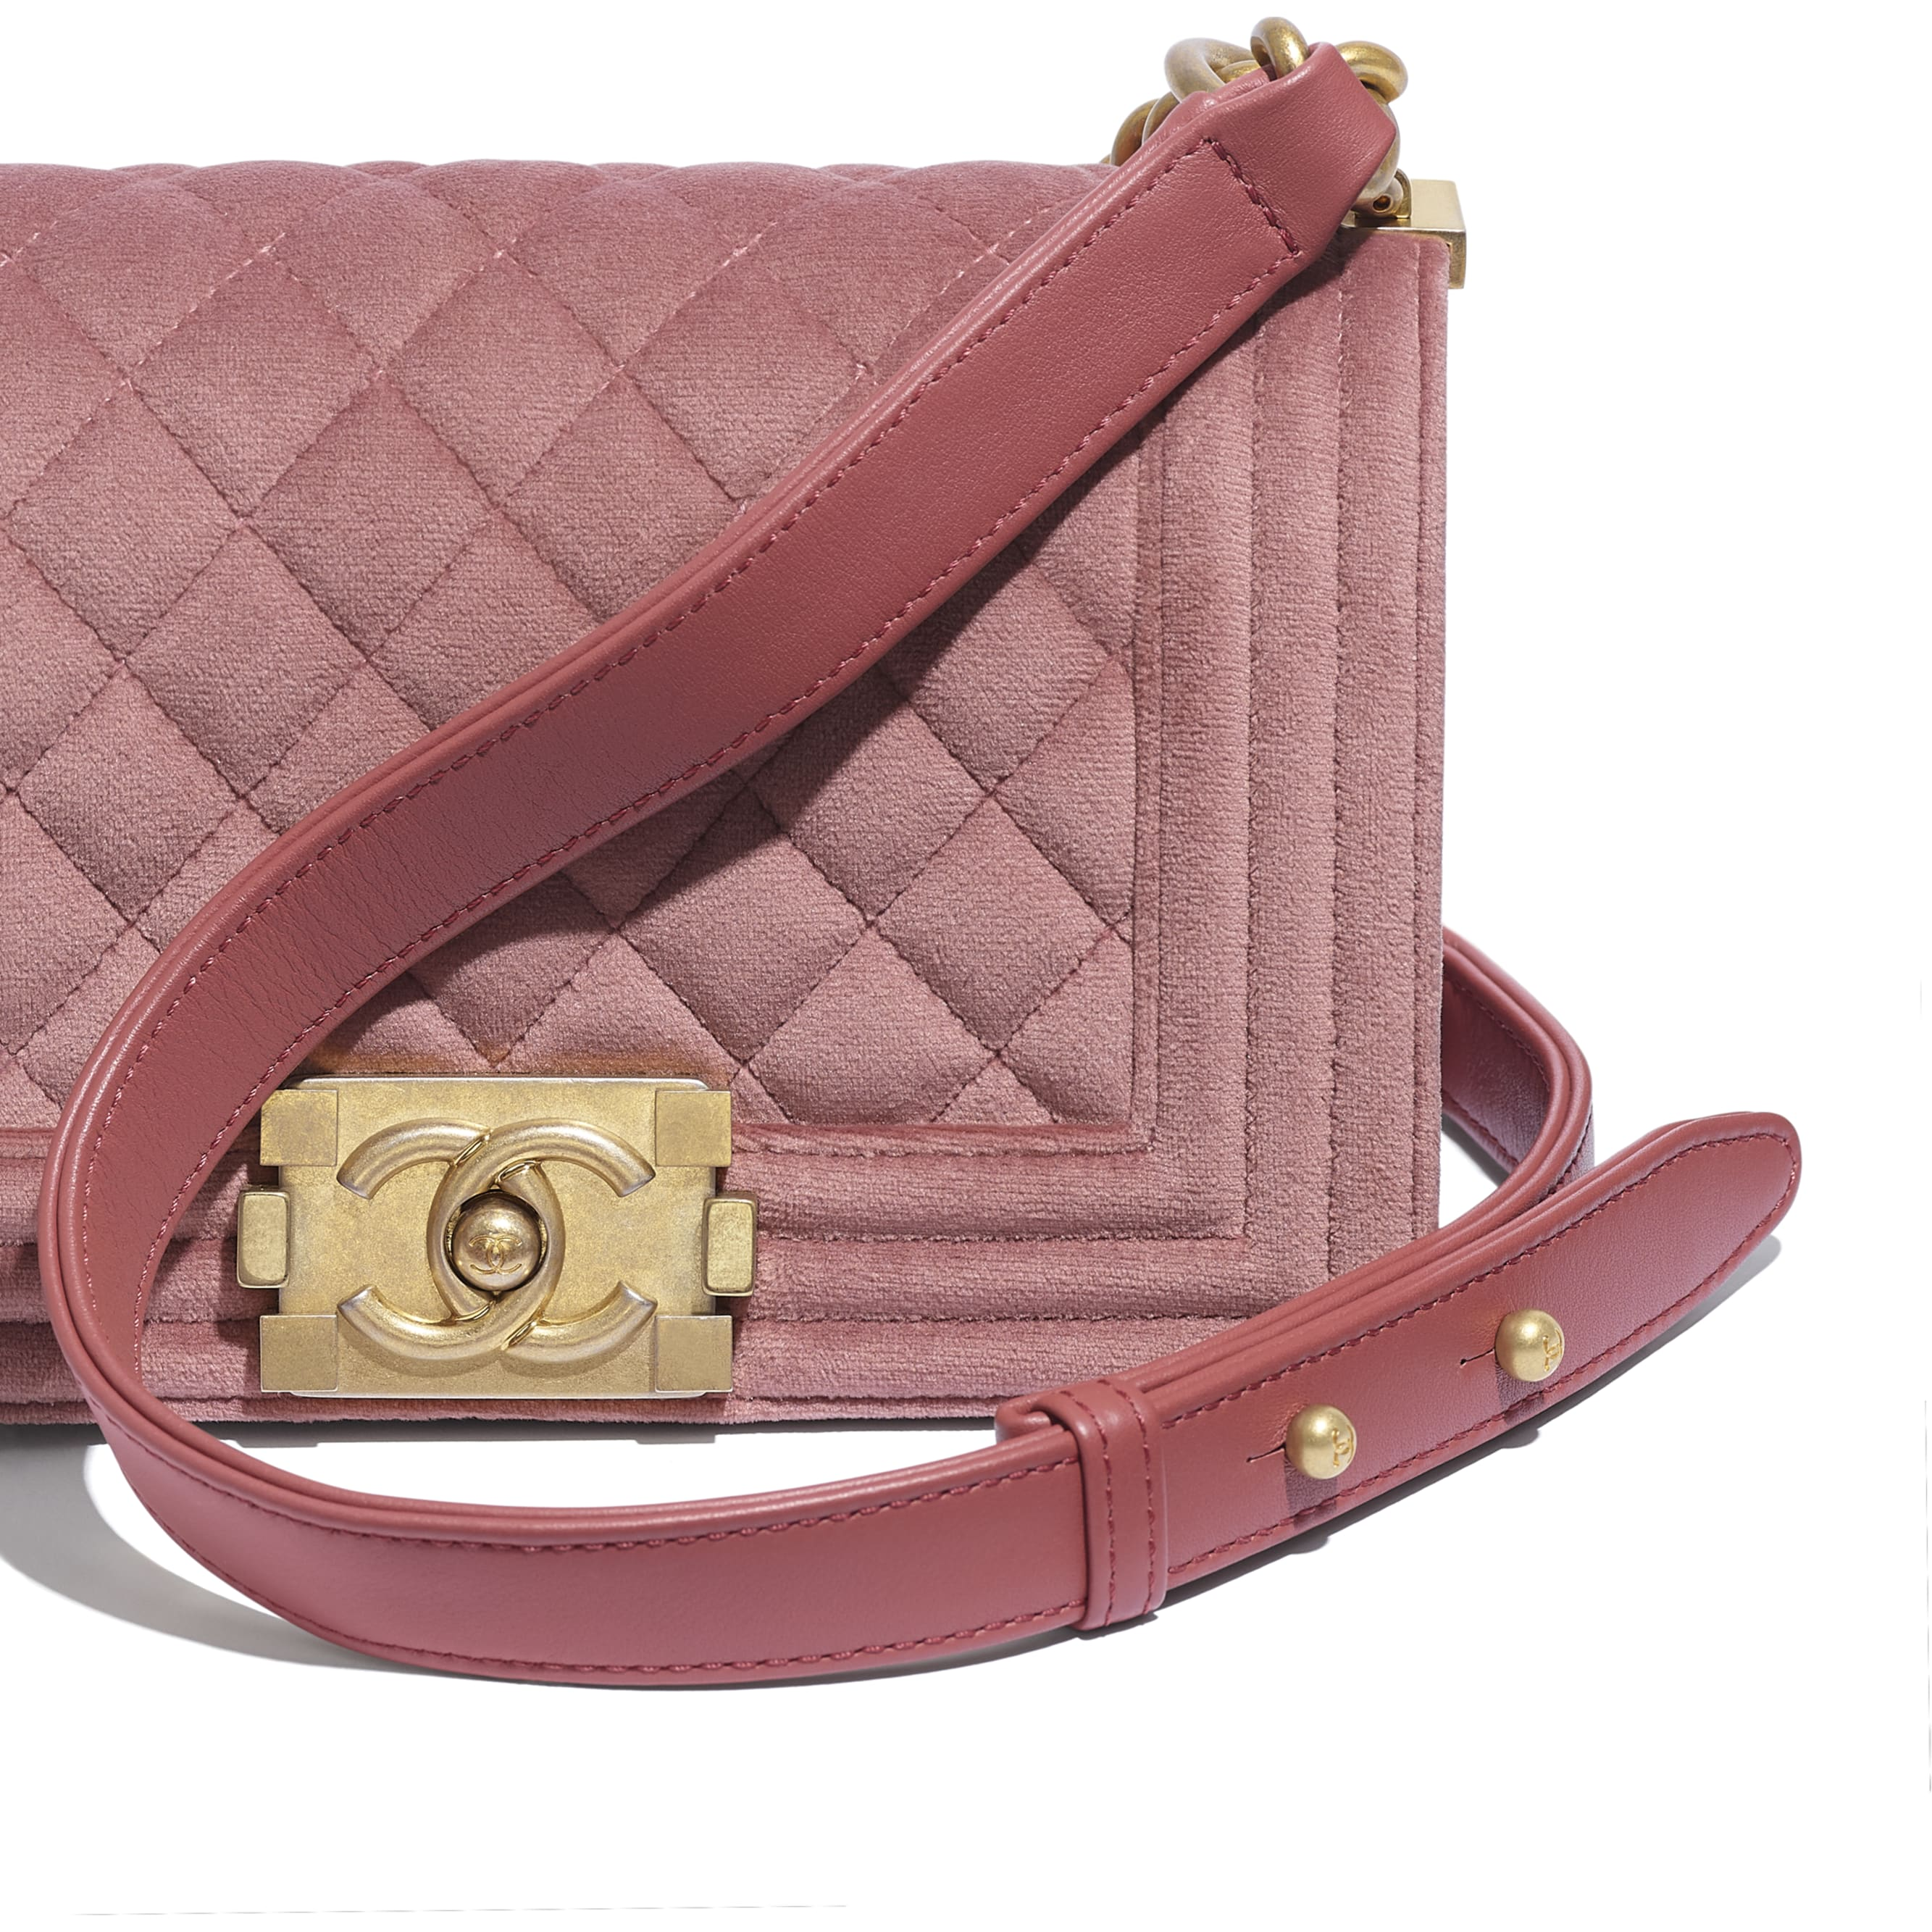 Small BOY CHANEL Handbag - Pink - Velvet & Gold Metal - CHANEL - Extra view - see standard sized version